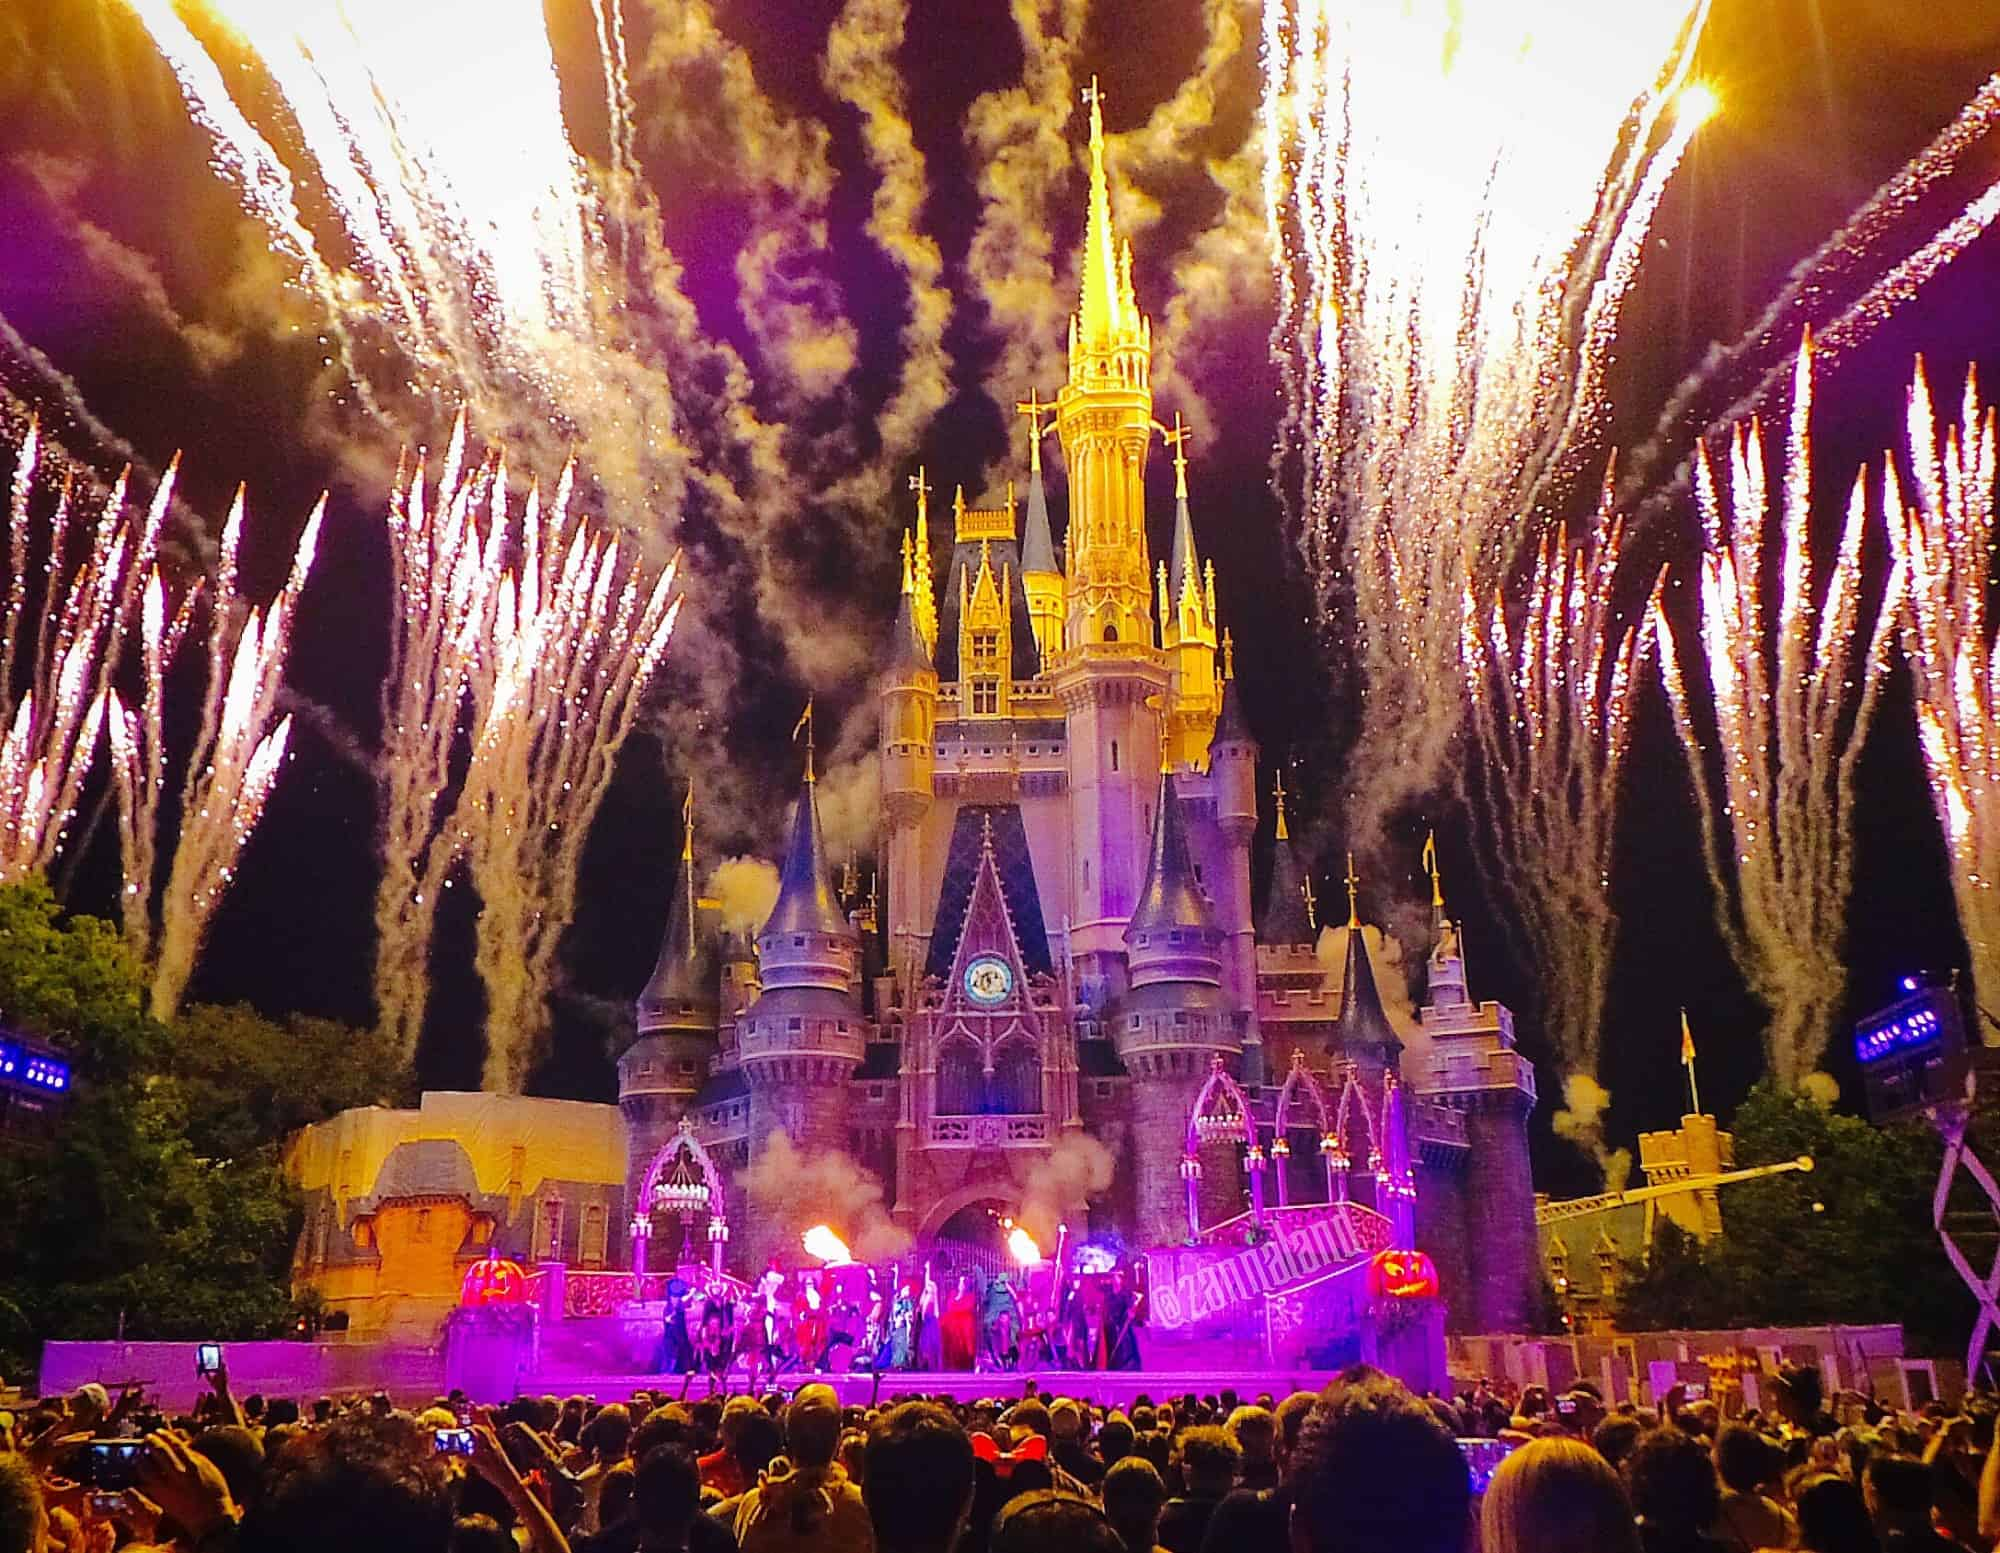 Finale of the Hocus Pocus Villain Spelltacular